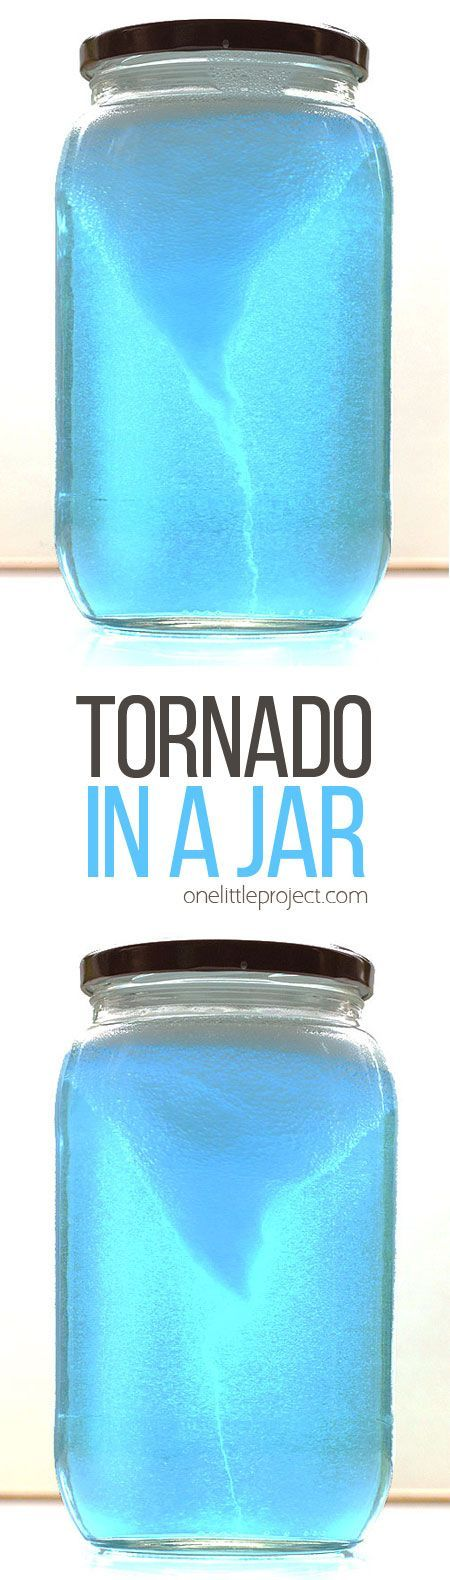 This tornado in a jar experiment is crazy simple, but it's SO COOL to watch! It takes less than five minutes to put together.